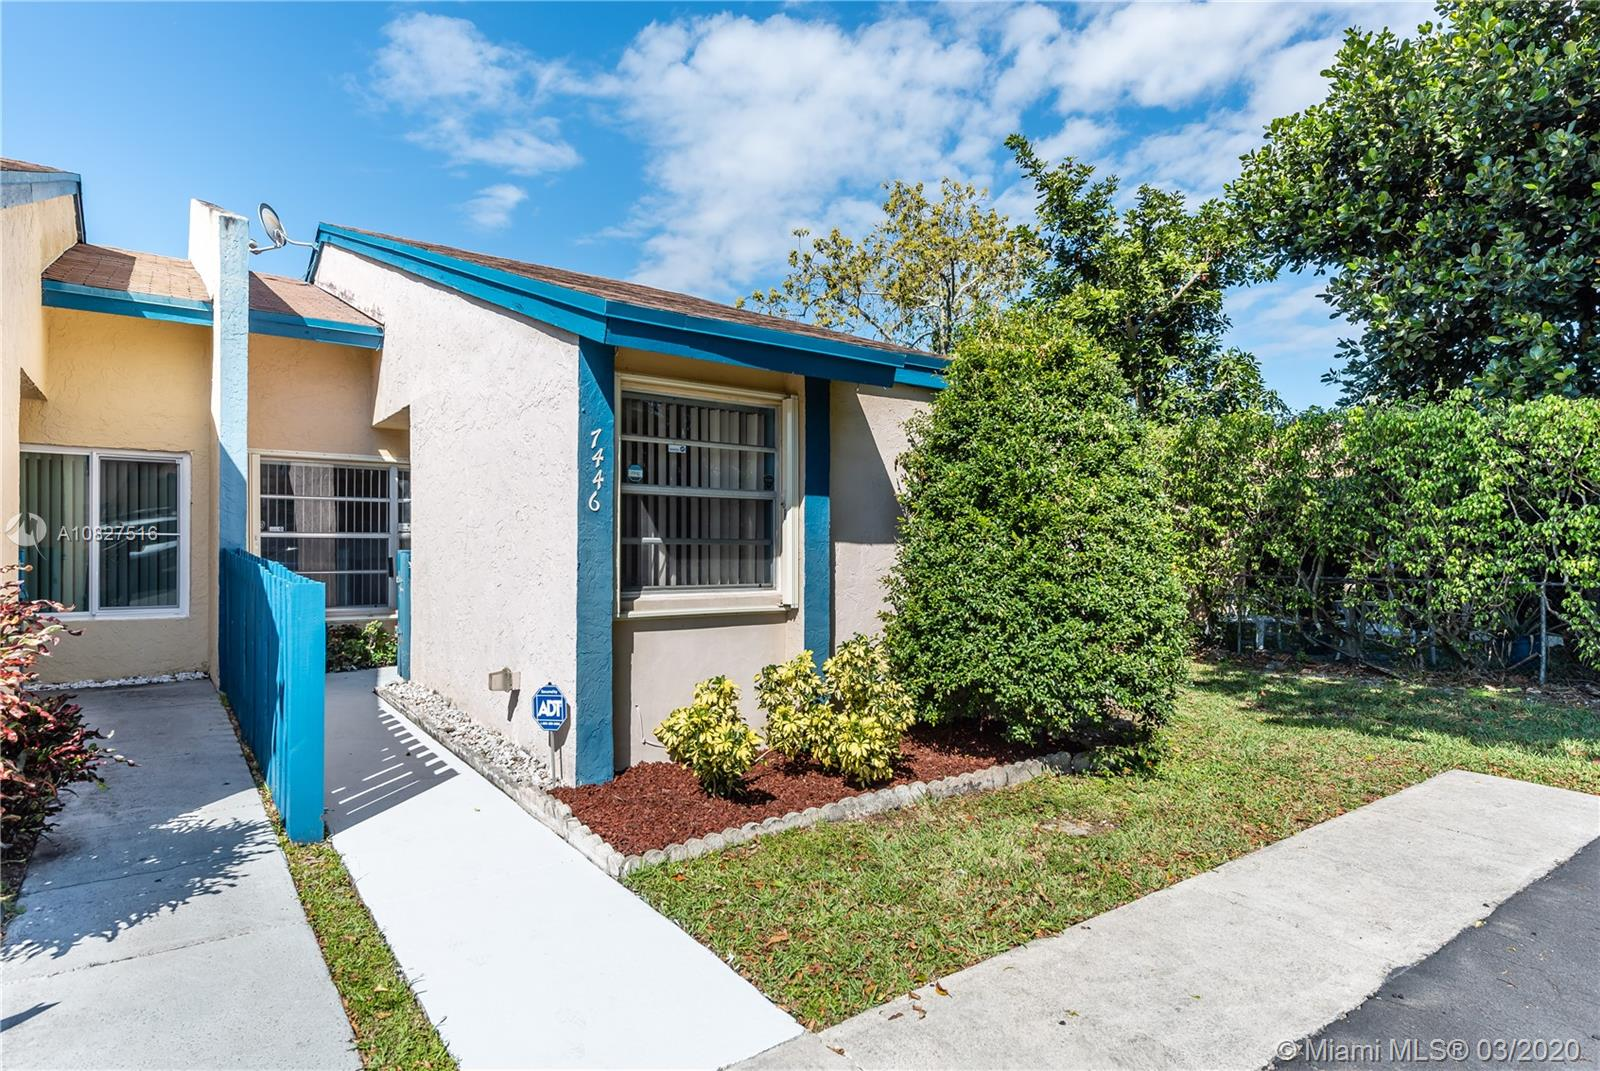 7446 NW 34th St # 7446, Lauderhill, Florida 33319, 2 Bedrooms Bedrooms, 6 Rooms Rooms,2 BathroomsBathrooms,Residential,For Sale,7446 NW 34th St # 7446,A10827516